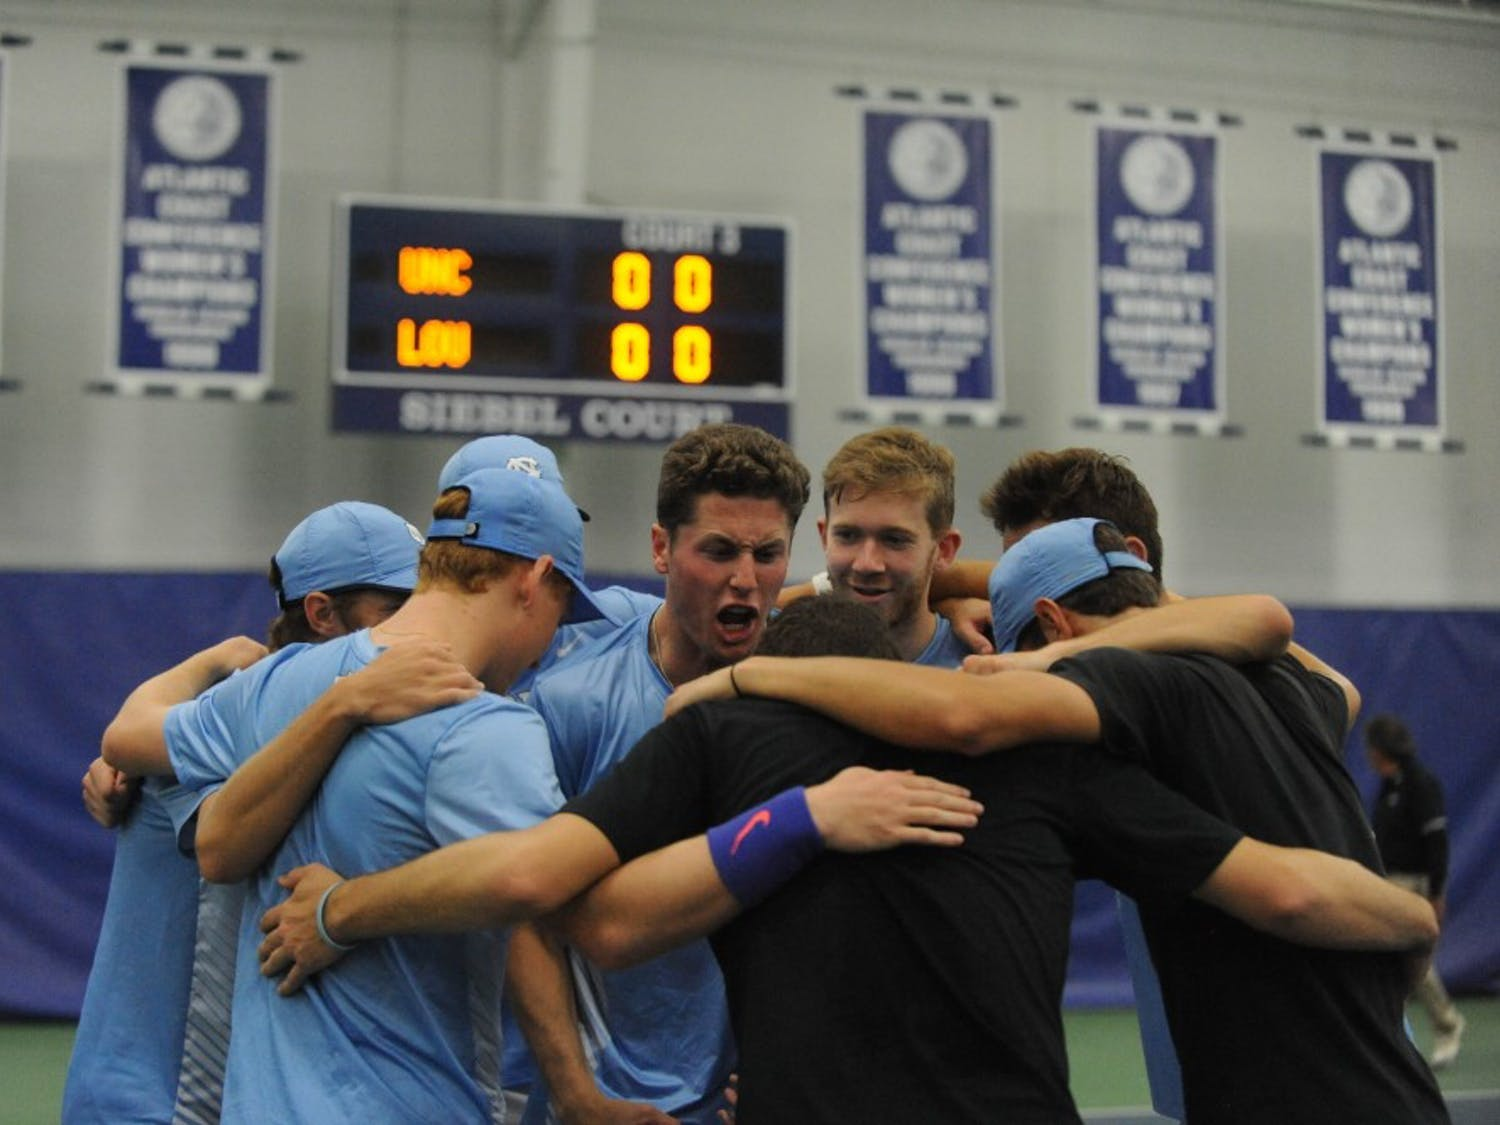 The UNC men's tennis team huddles together at the ACC tournament quarterfinals. UNC played against Louisville and won 4-0.